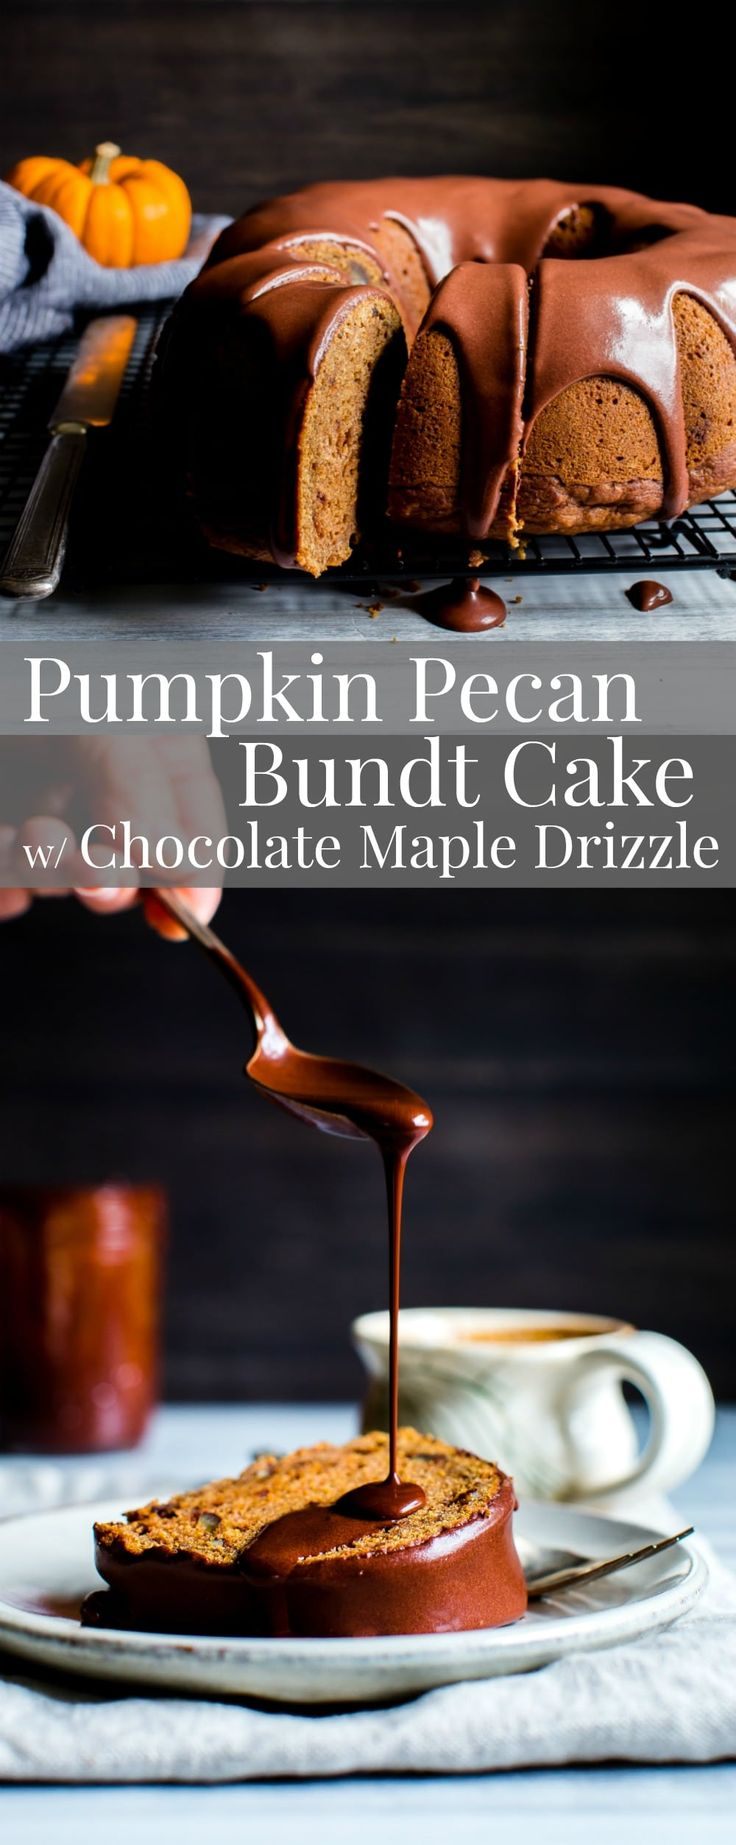 A tender moist crumb with a touch of chocolate, Pumpkin Pecan Bundt Cake with Chocolate Maple Drizzle is a crowd pleaser! vegan, dairy free, egg free